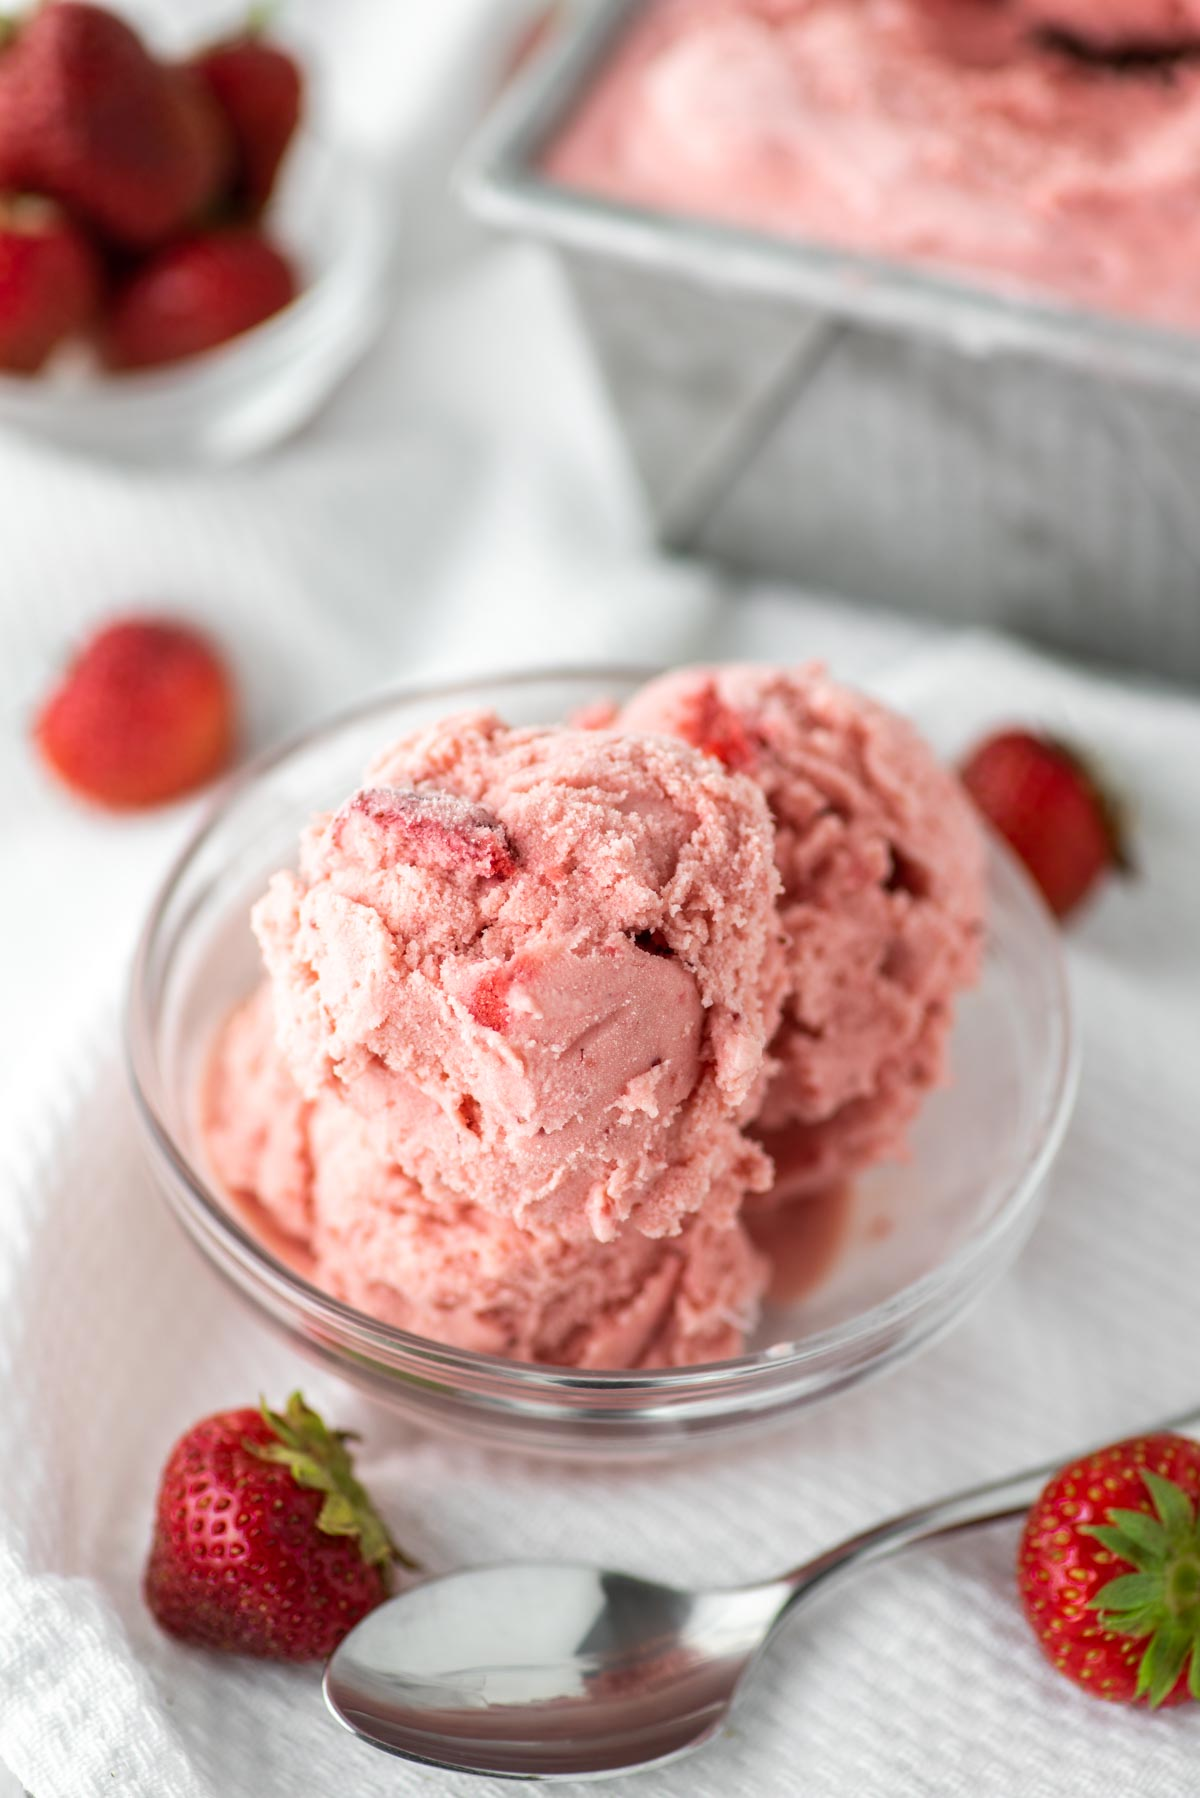 strawberry ice cream in glass bowl with container in background